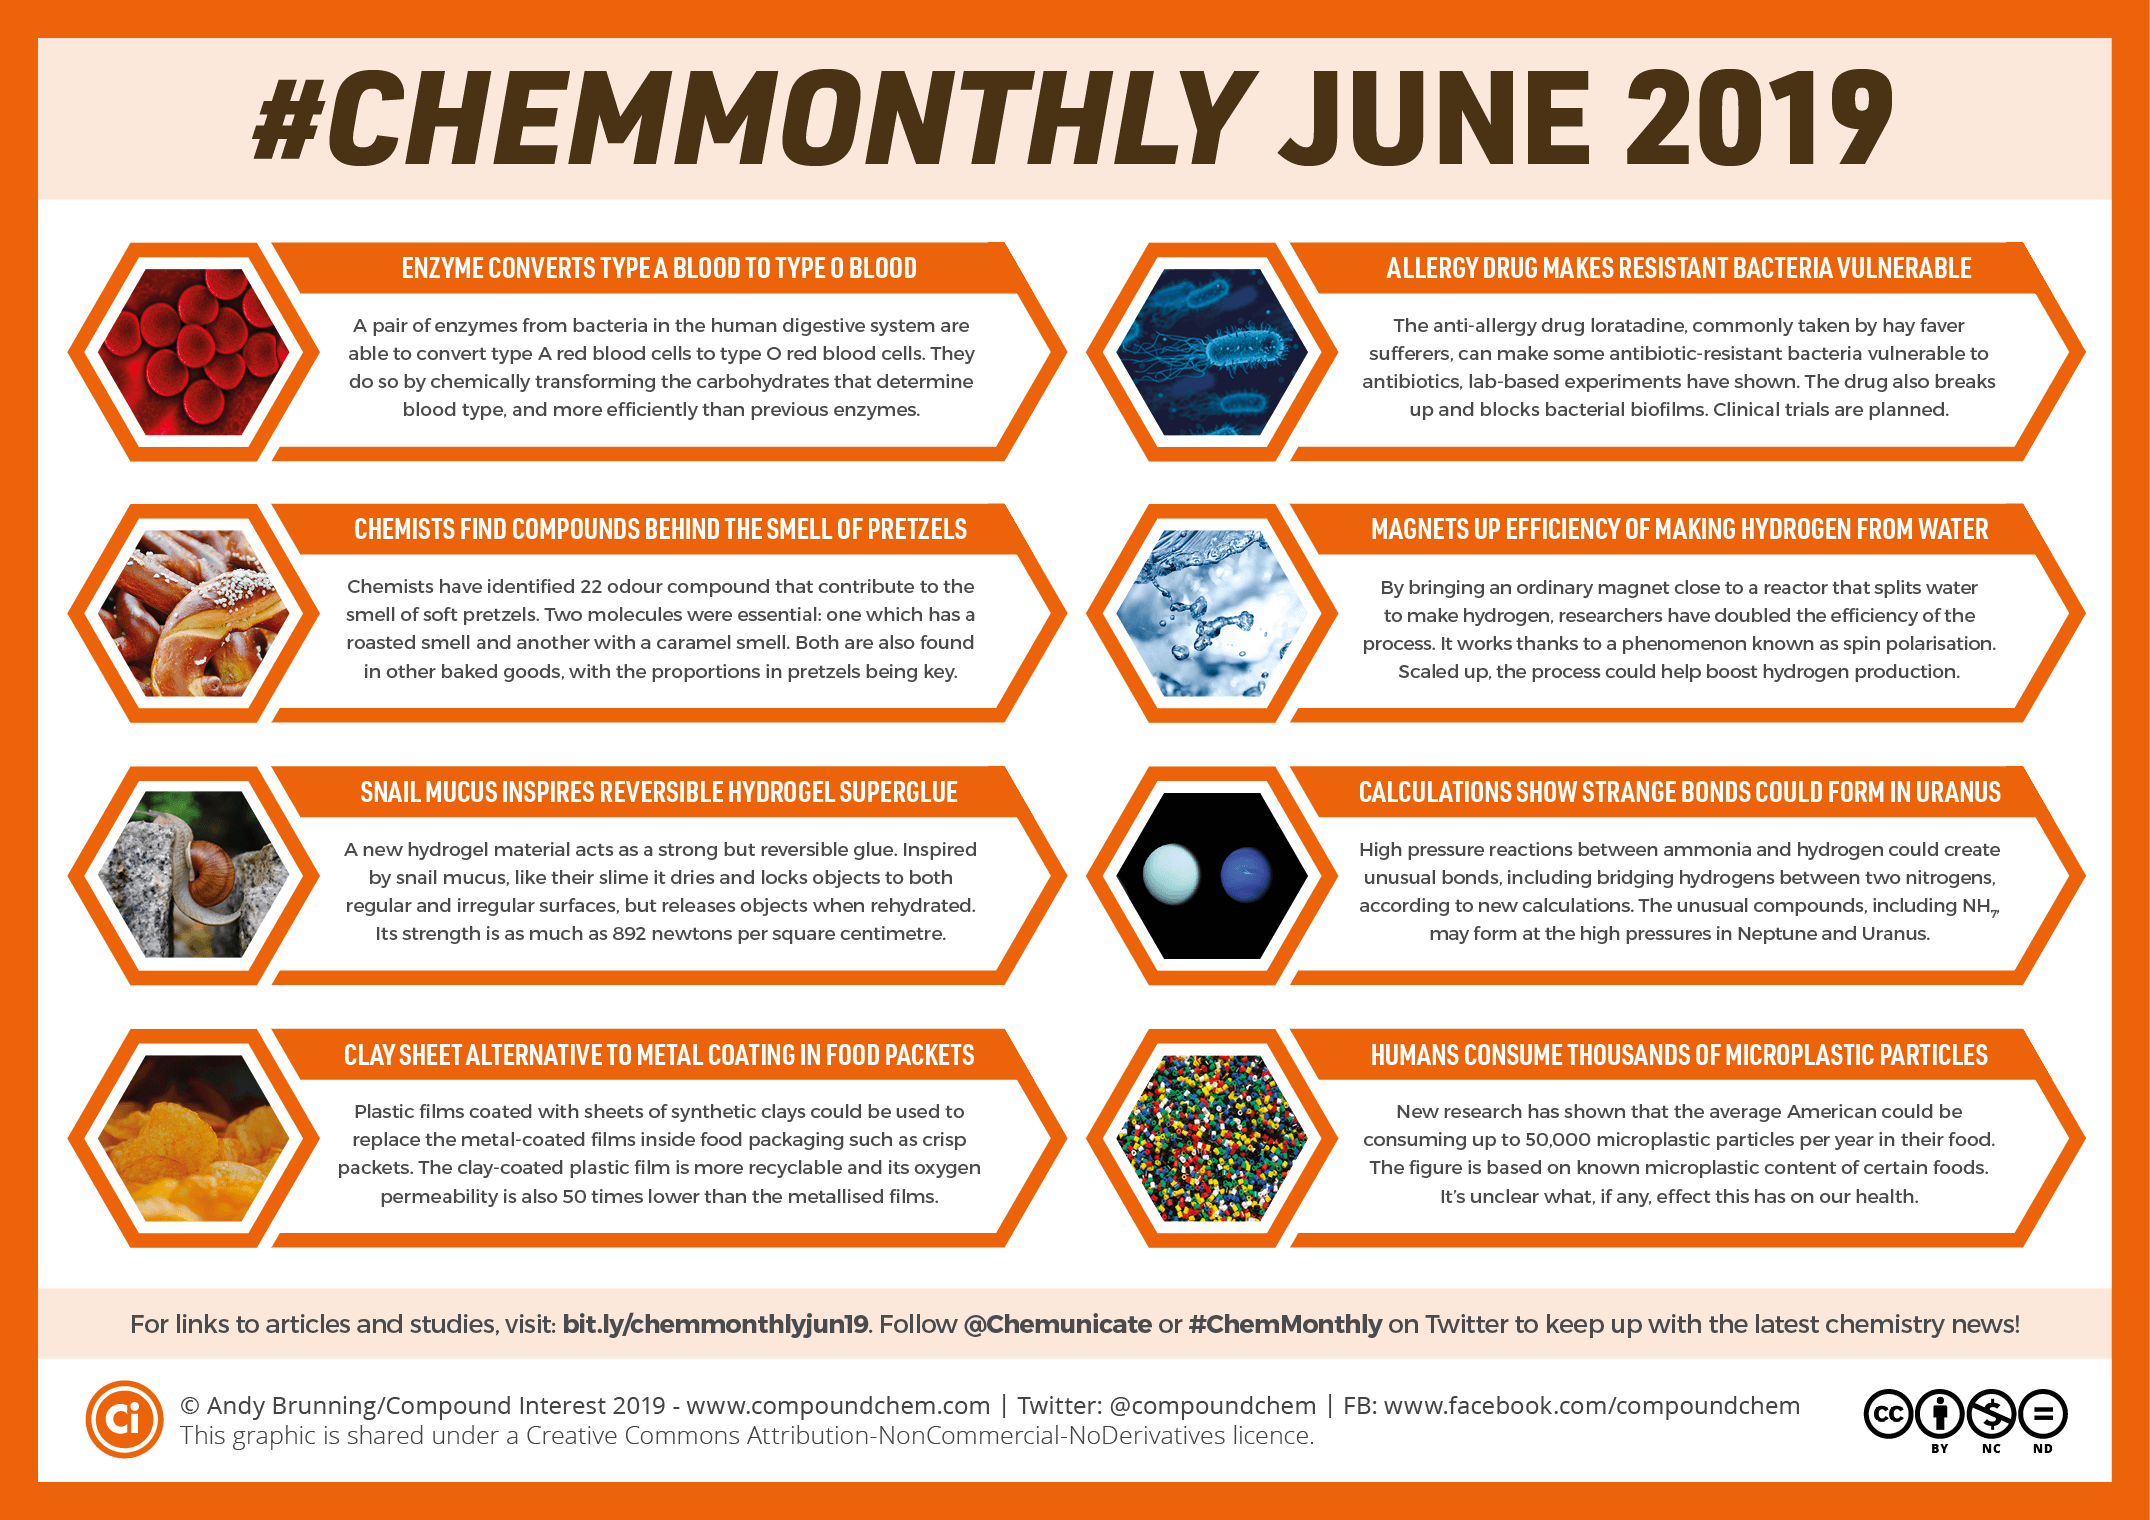 #ChemMonthly June 2019: Converting blood types, snail-inspired glue and strange bonds in Uranus